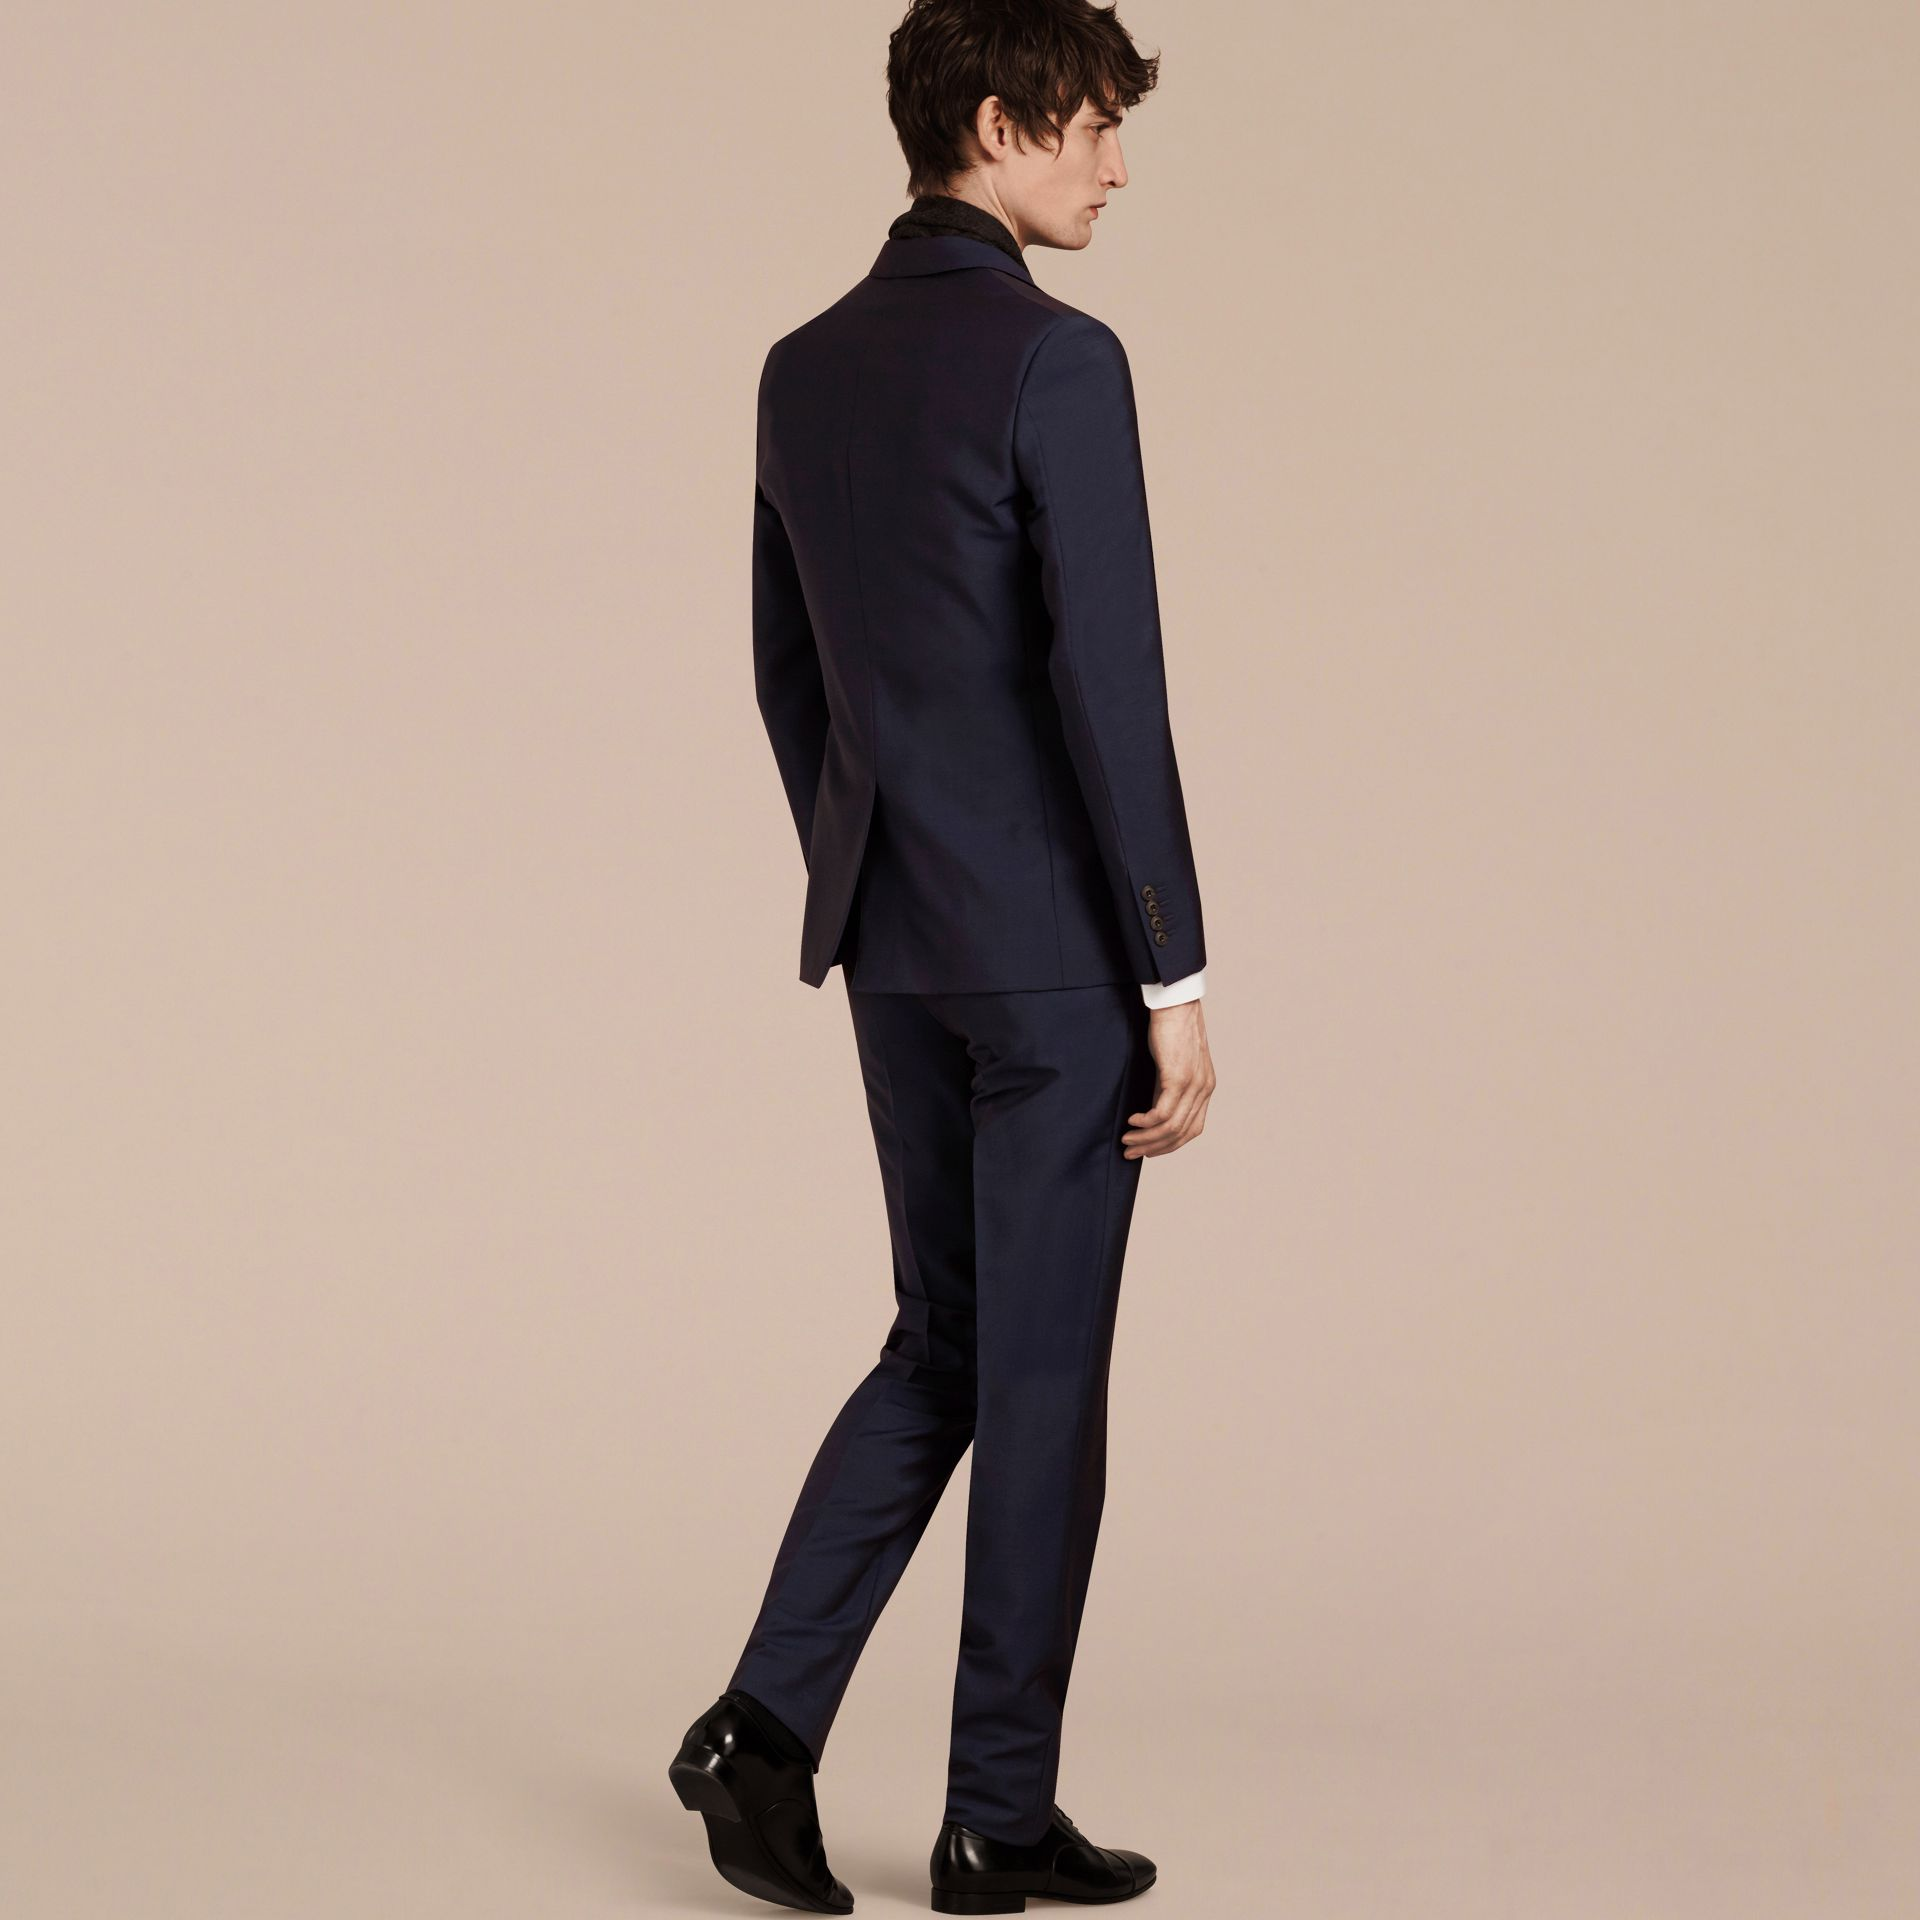 Slim Fit Wool Mohair Part-canvas Suit in Royal Navy - Men | Burberry - gallery image 4